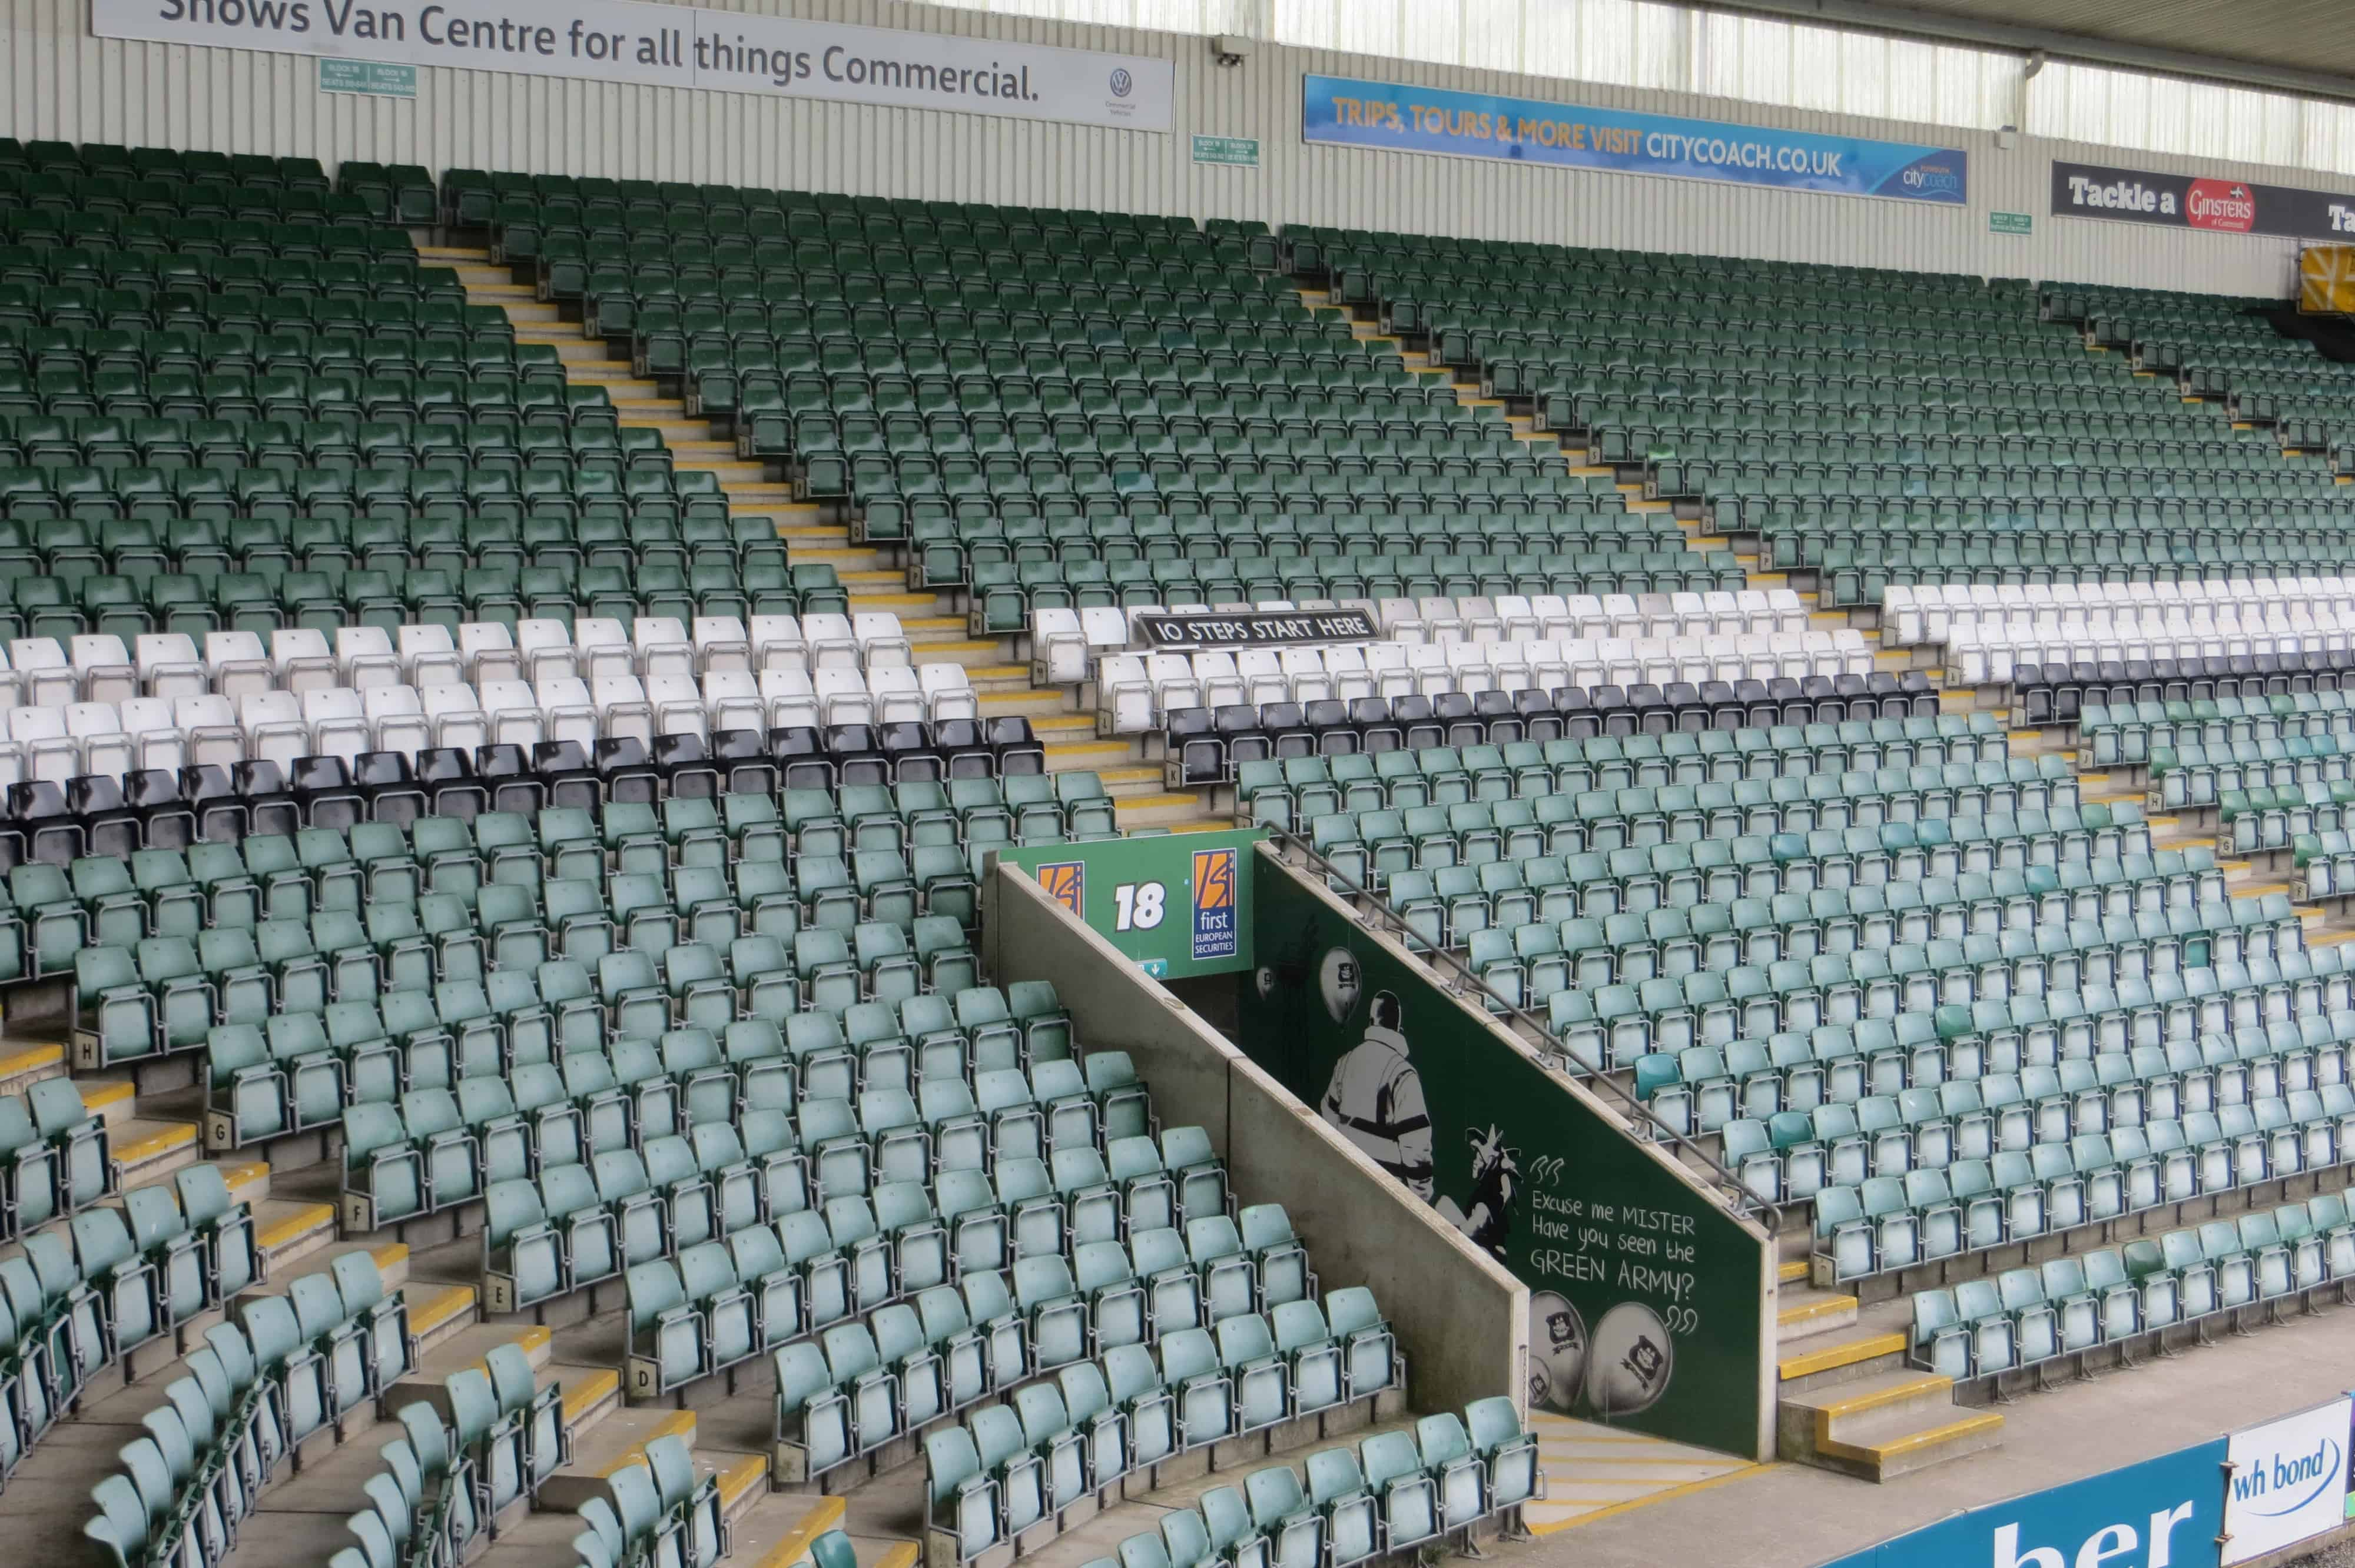 As a parting shot, the 10 Steps sign had to be reunited with the Barn Park End!